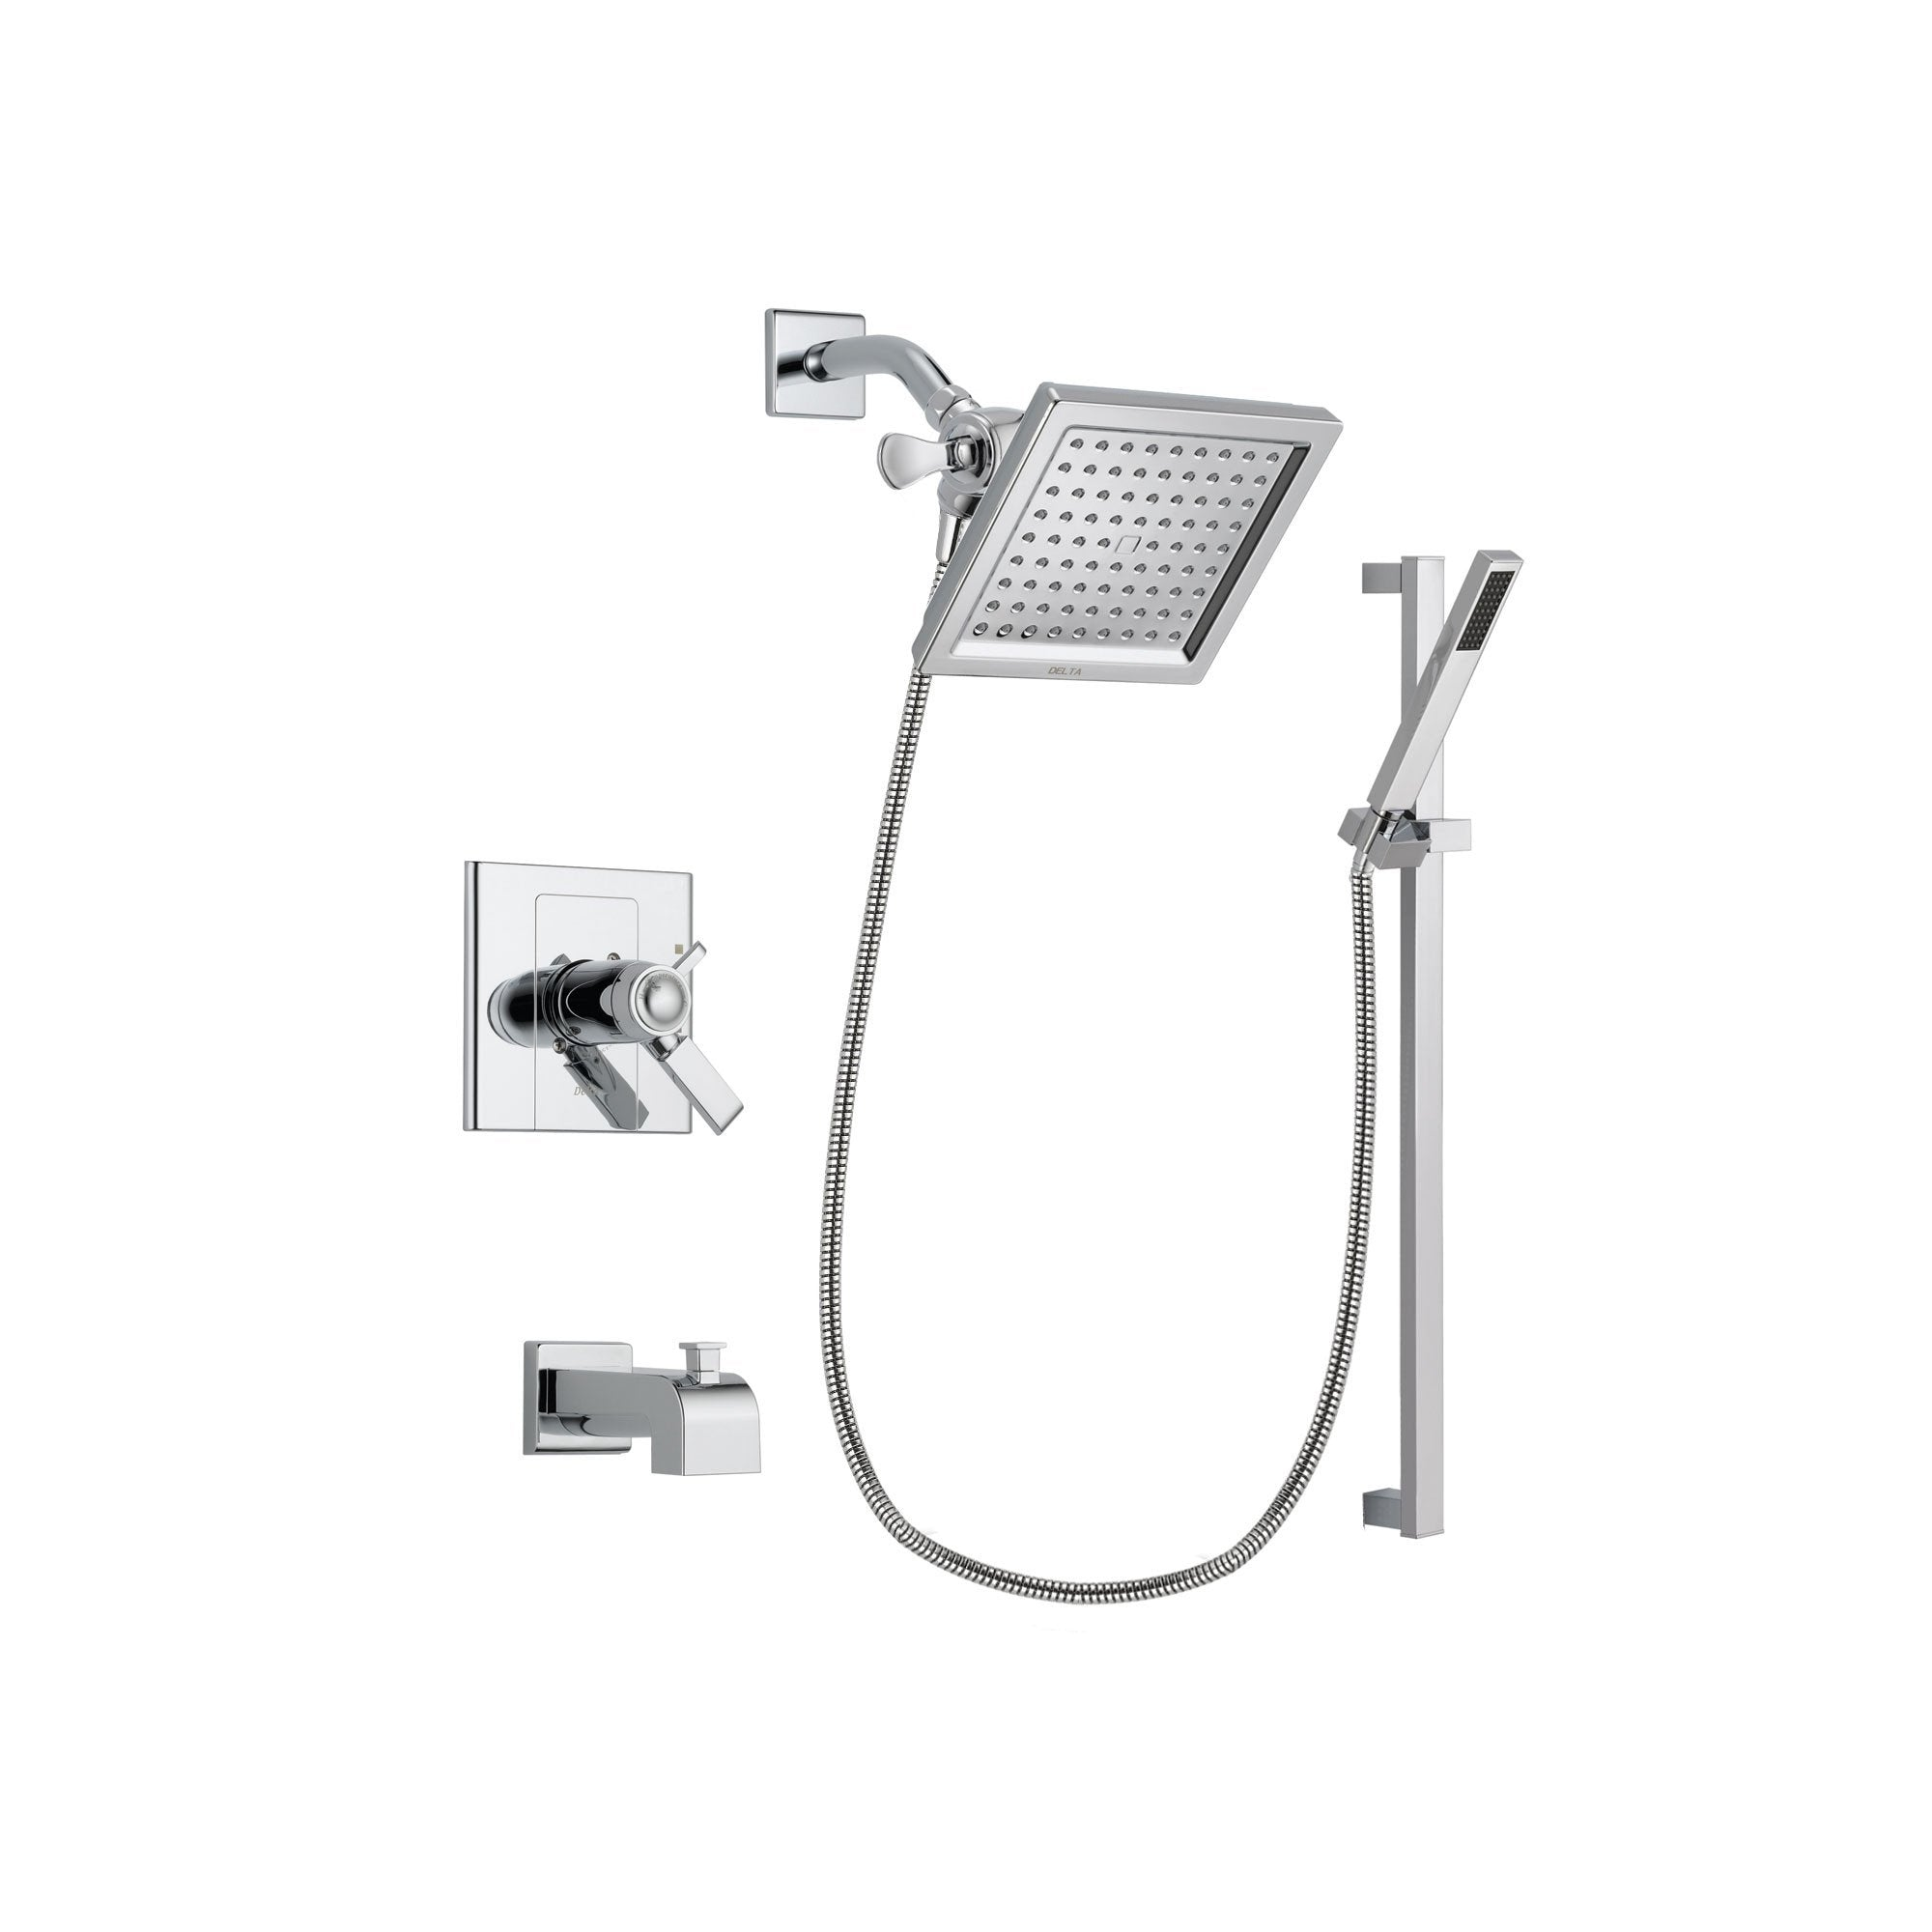 Delta Arzo Chrome Finish Thermostatic Tub and Shower Faucet System Package with 6.5-inch Square Rain Showerhead and Modern Square Wall Mount Slide Bar with Handheld Shower Spray Includes Rough-in Valve and Tub Spout DSP0214V